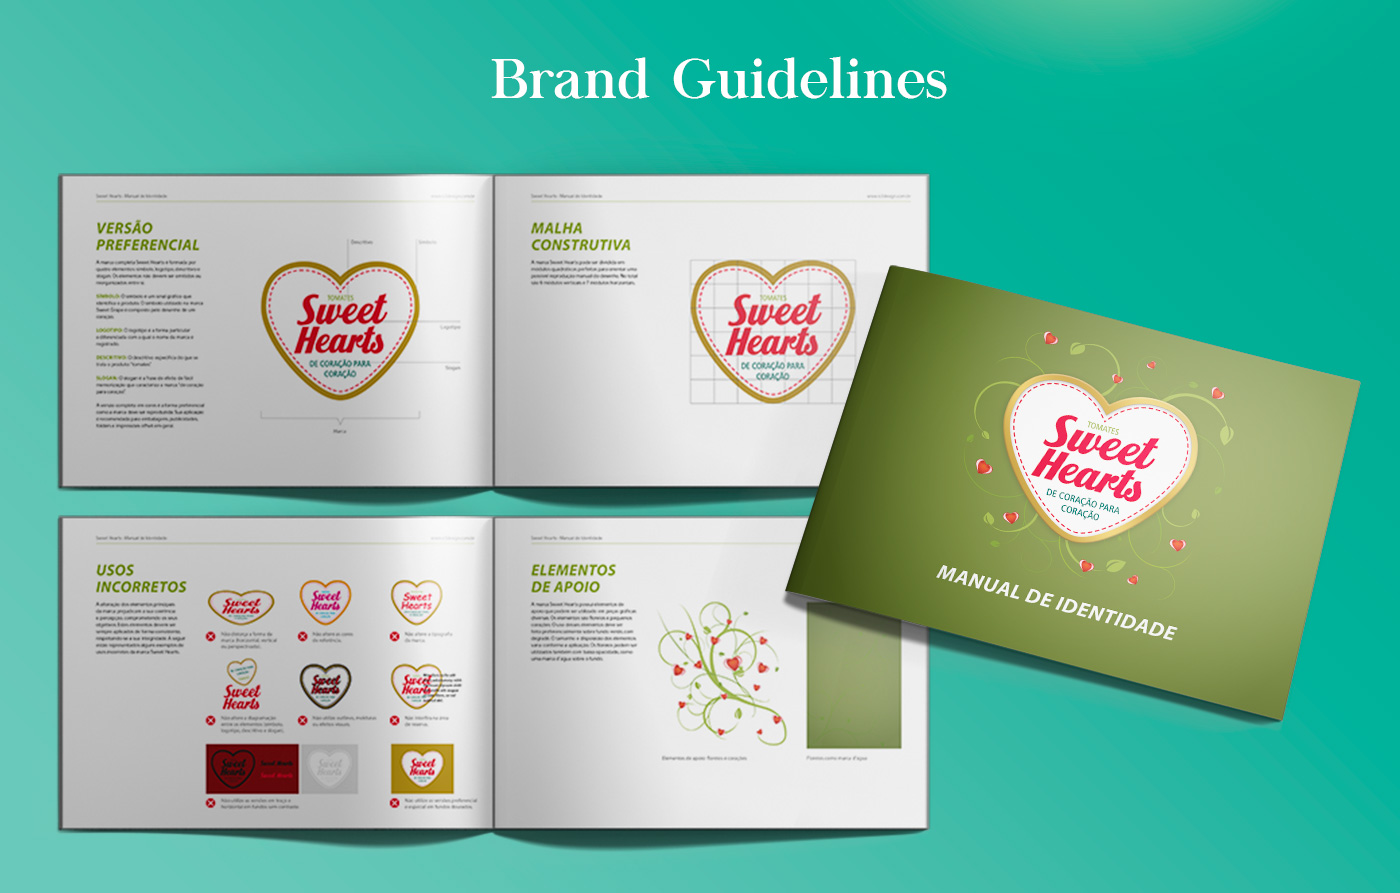 Brand Guideline design